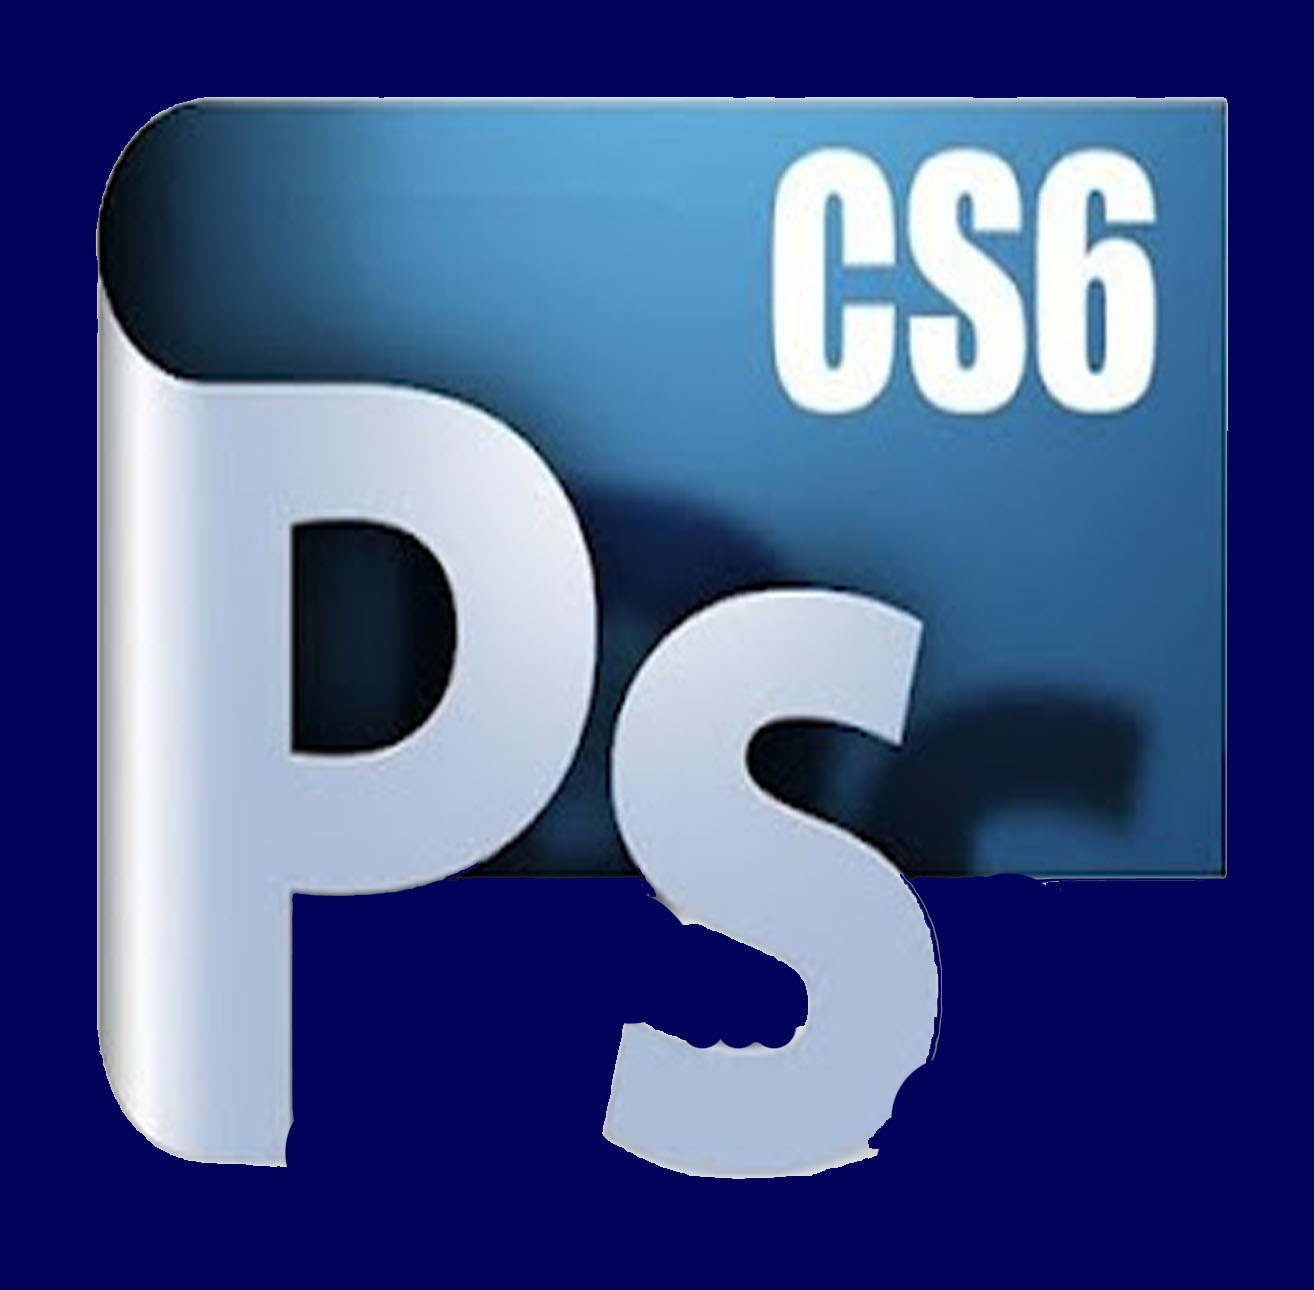 Photoshop CS6 13.0 Final Silent Install Full Mediafire Crack Patch